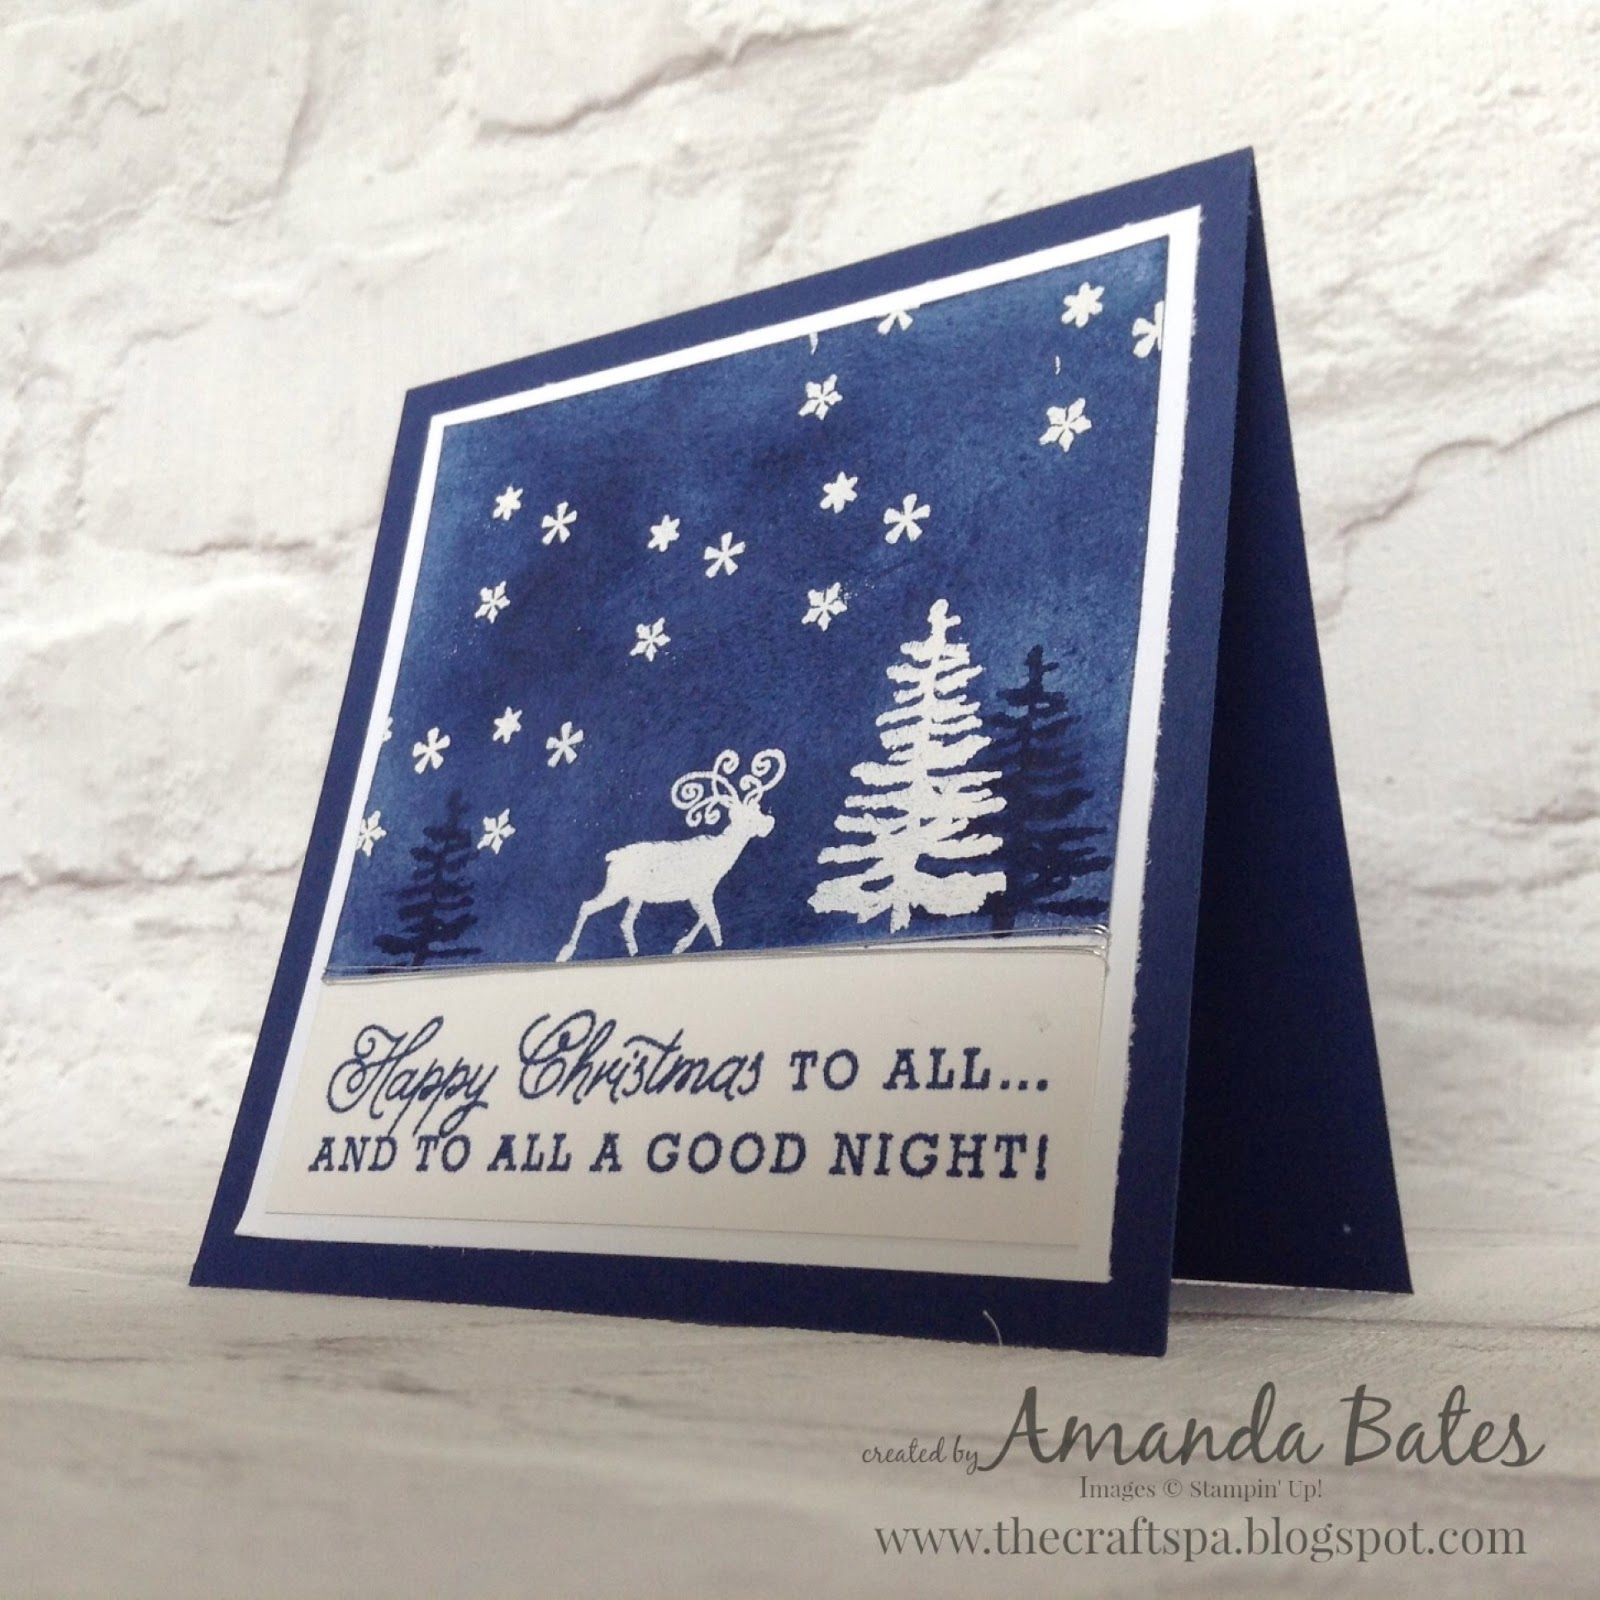 The craft spa stampin up uk independent demonstrator order greetings from santa scene m4hsunfo